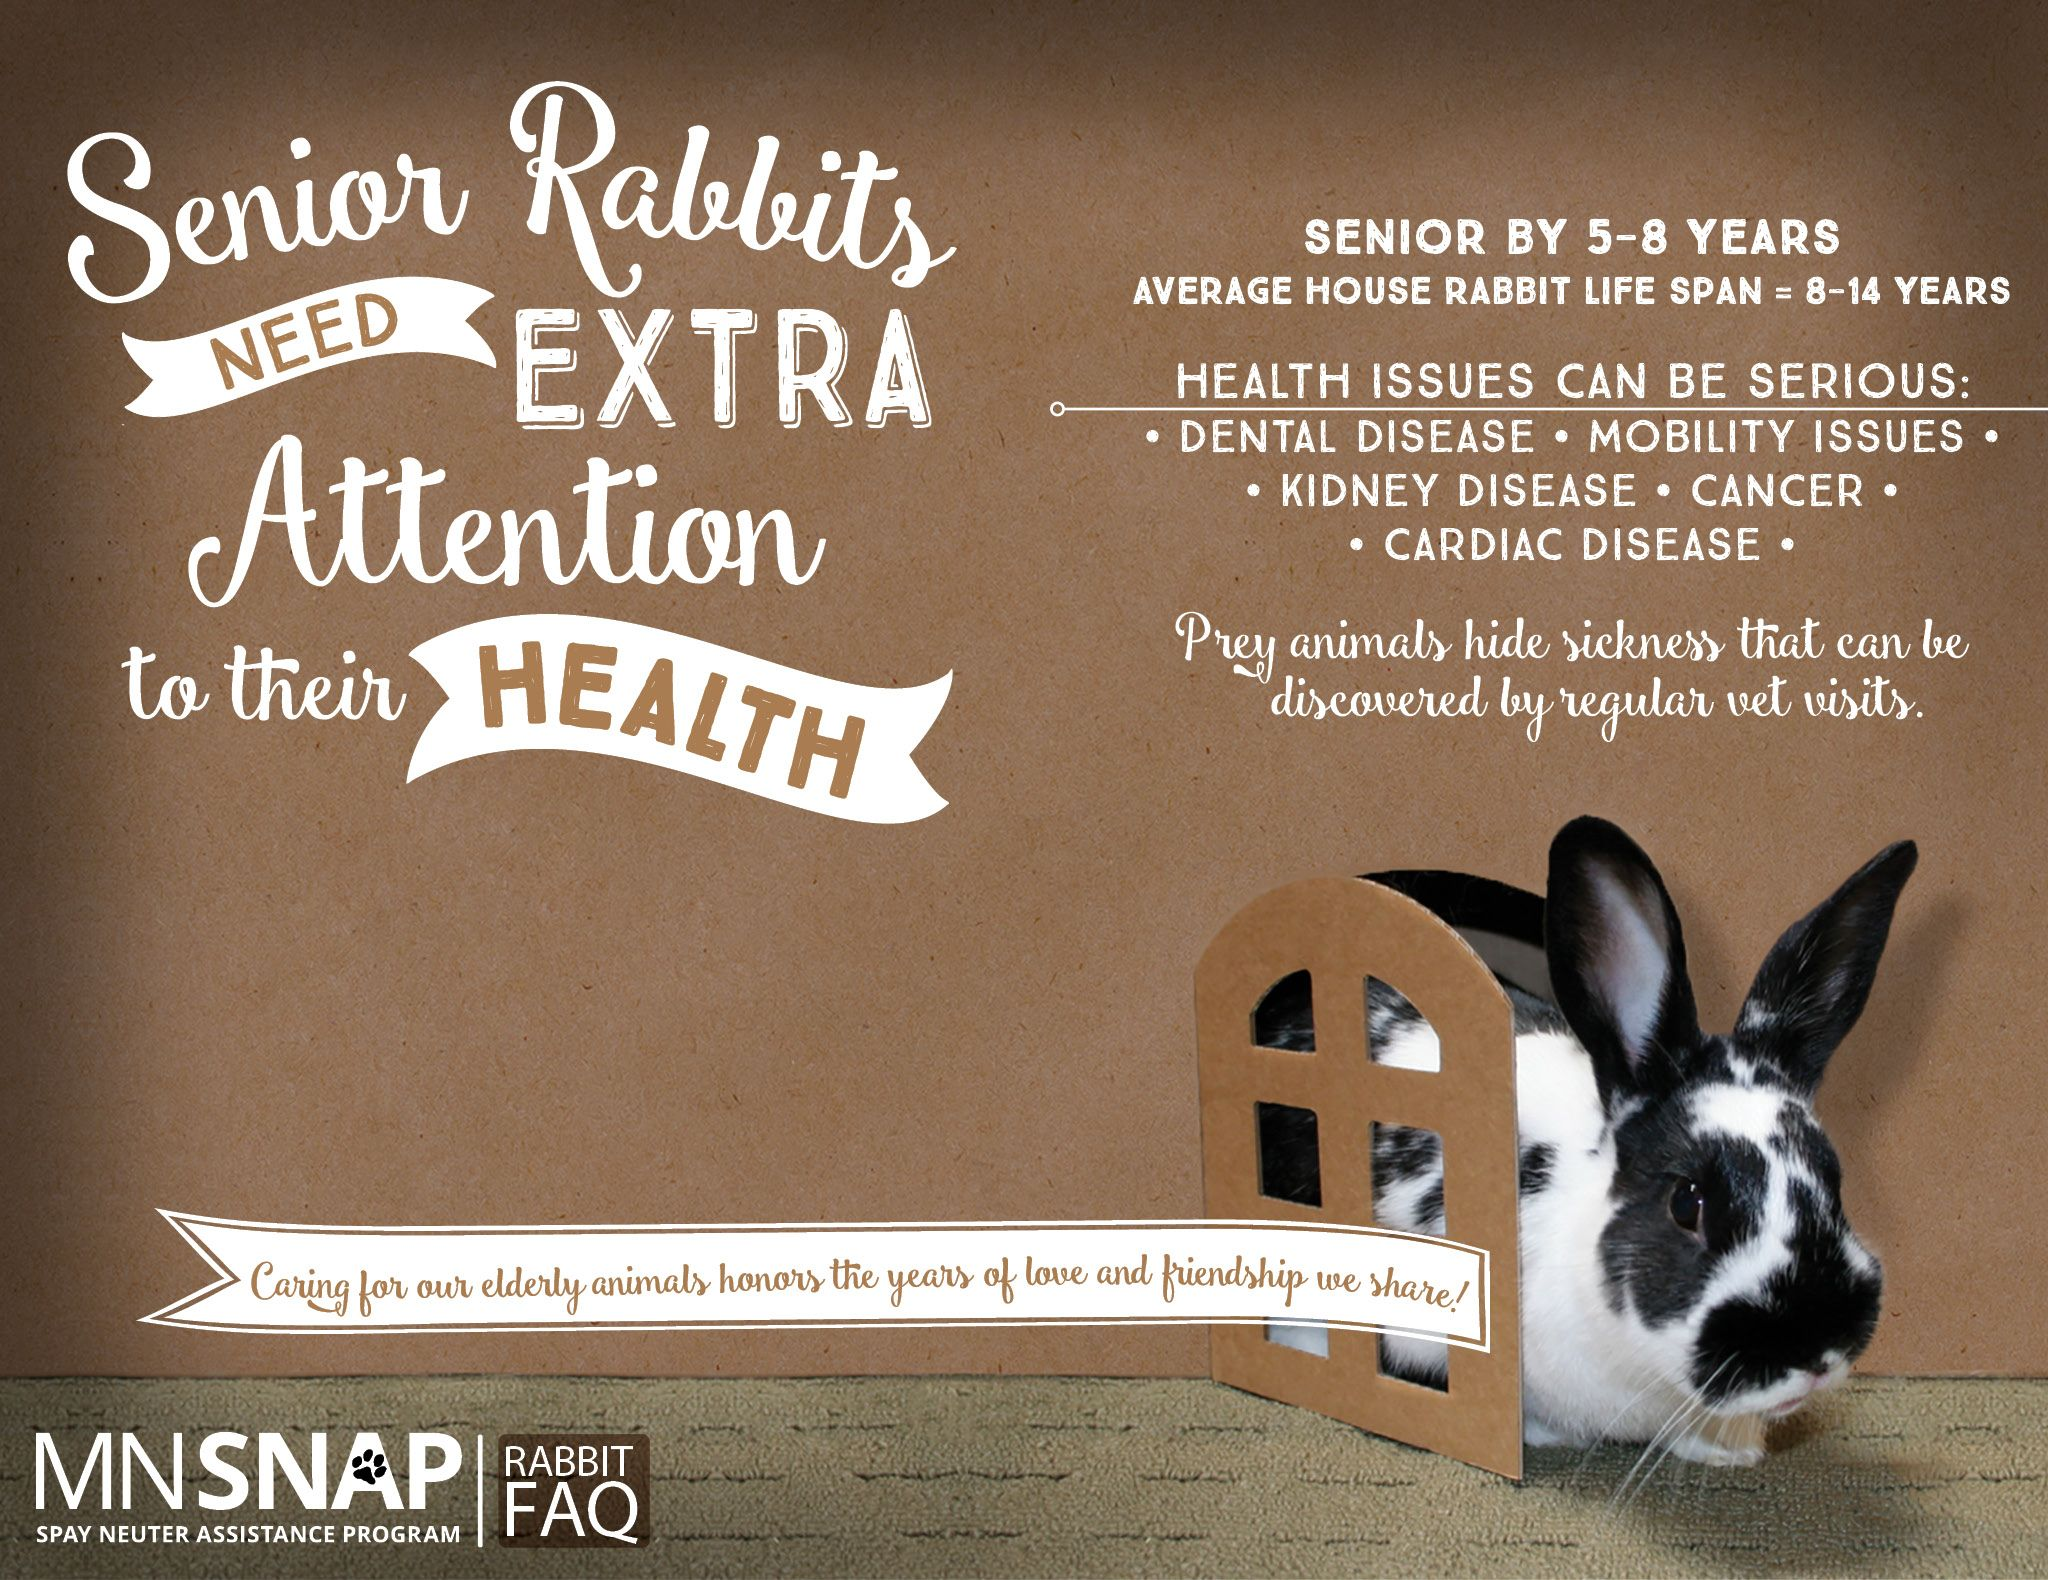 Senior Rabbits Require Extra Attention To Their Health And Wellness Rabbits Are Prey Animals Who Instinctively Hide Il Rabbit Life Bunny Care Rabbit Life Span